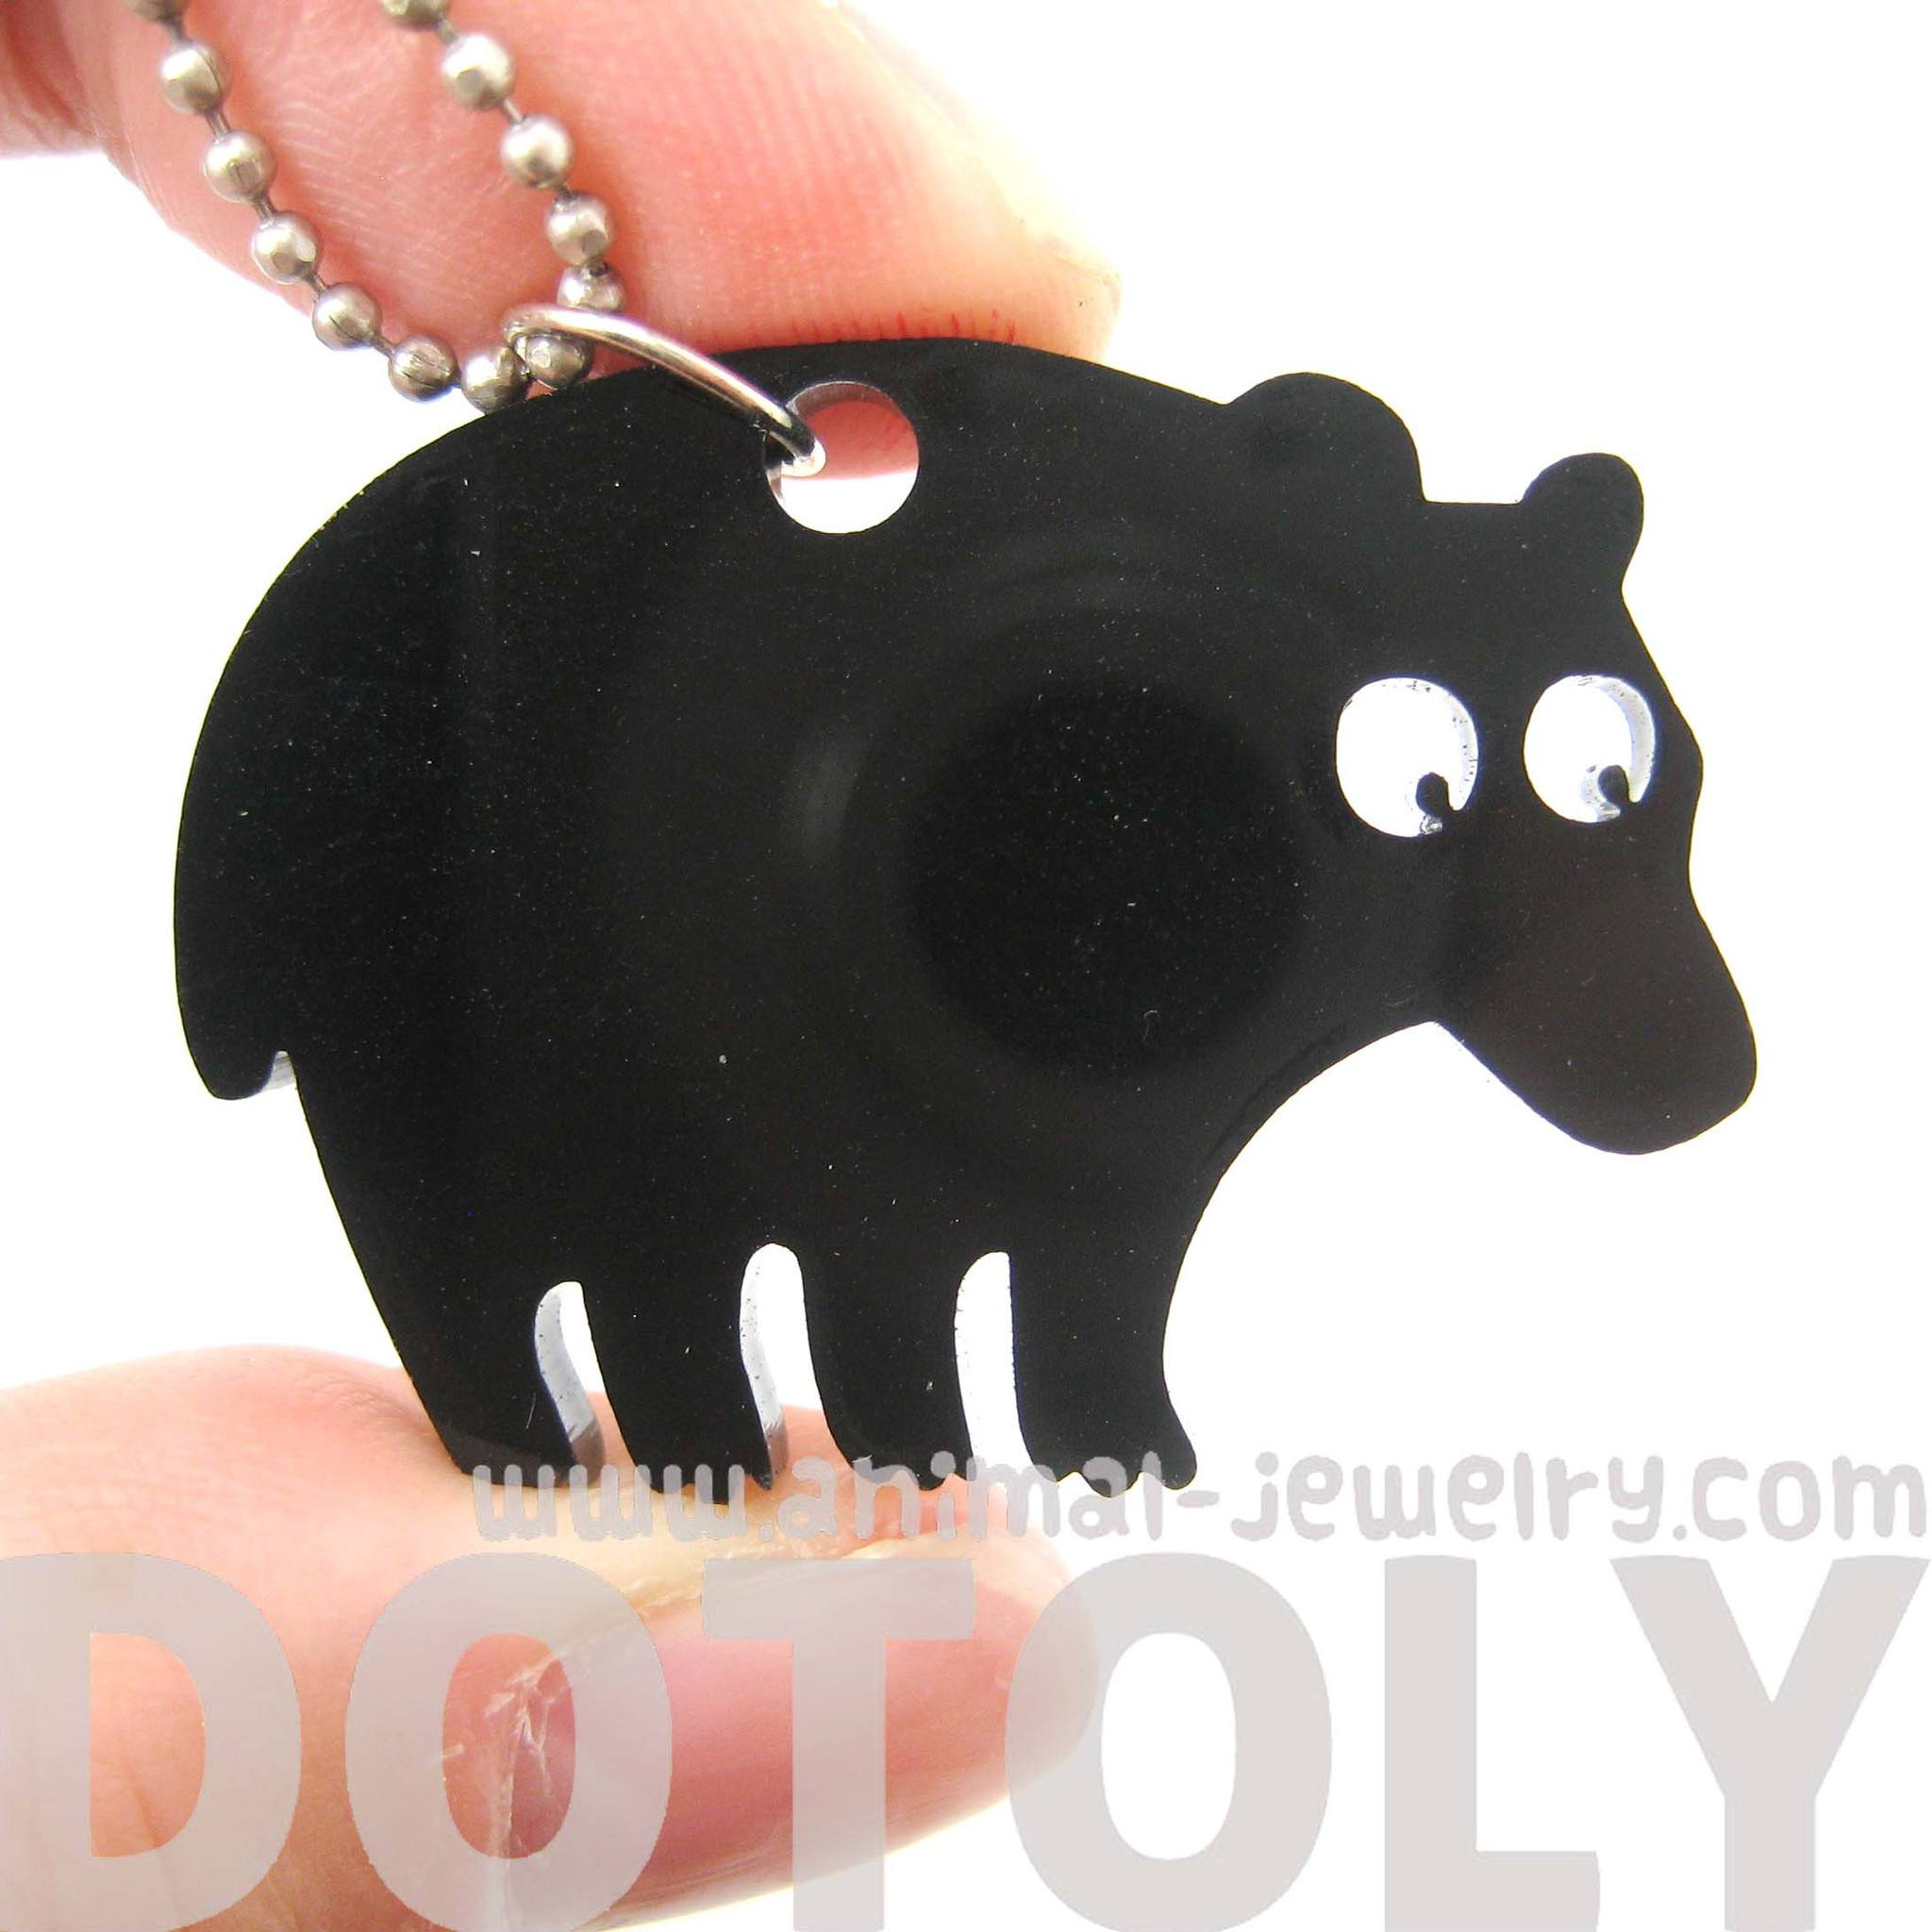 black-bear-silhouette-shaped-pendant-necklace-in-acrylic-animal-jewelry